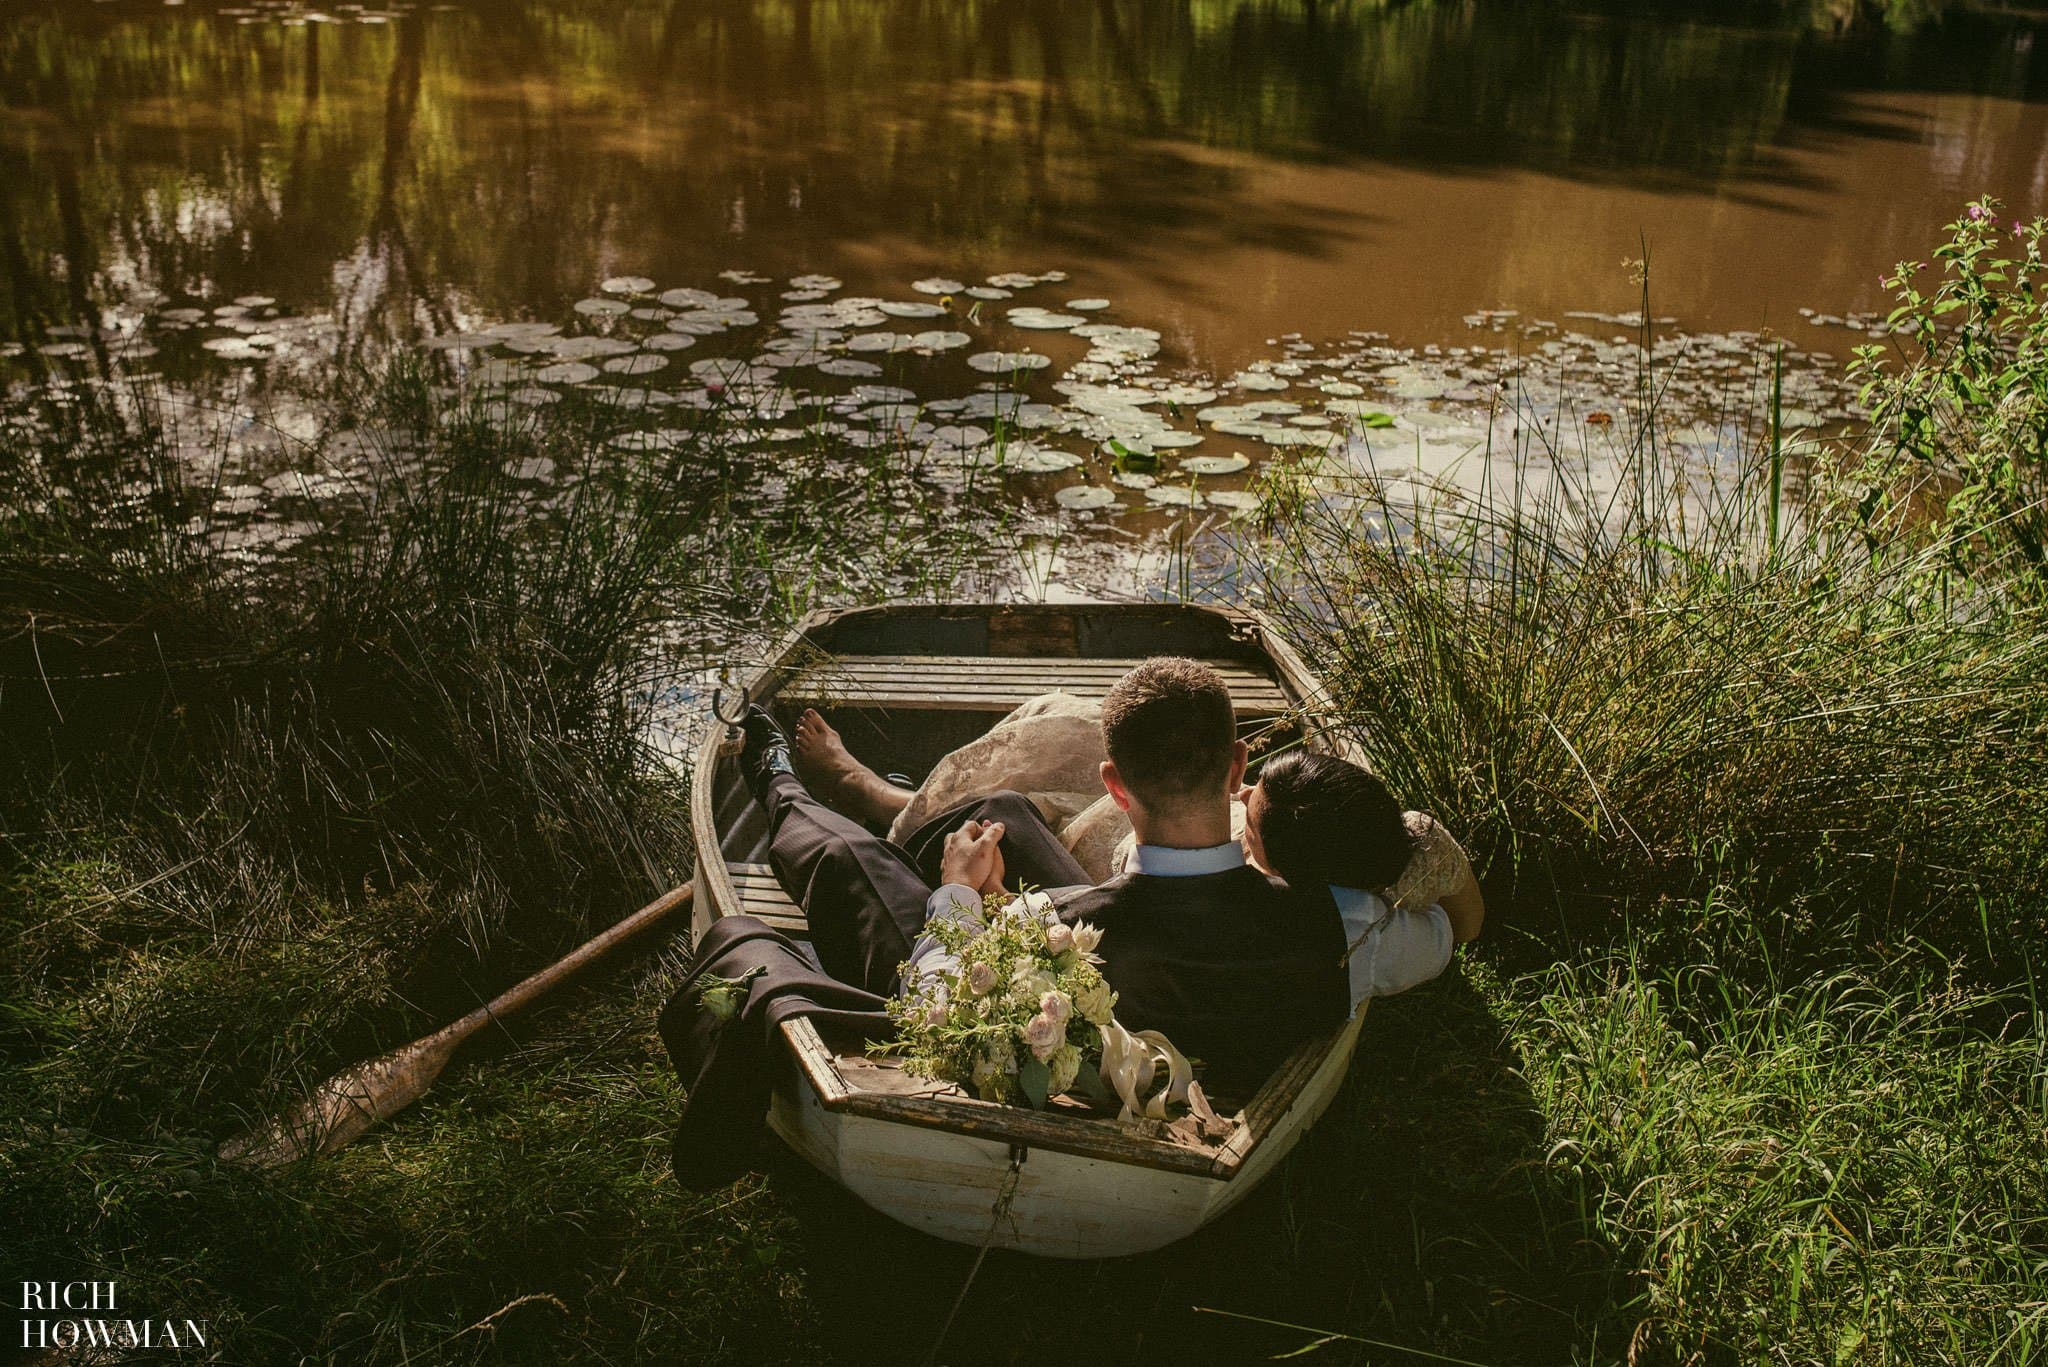 Photograph of the bride and groom by the lake during their wedding at Iscoyd Park.